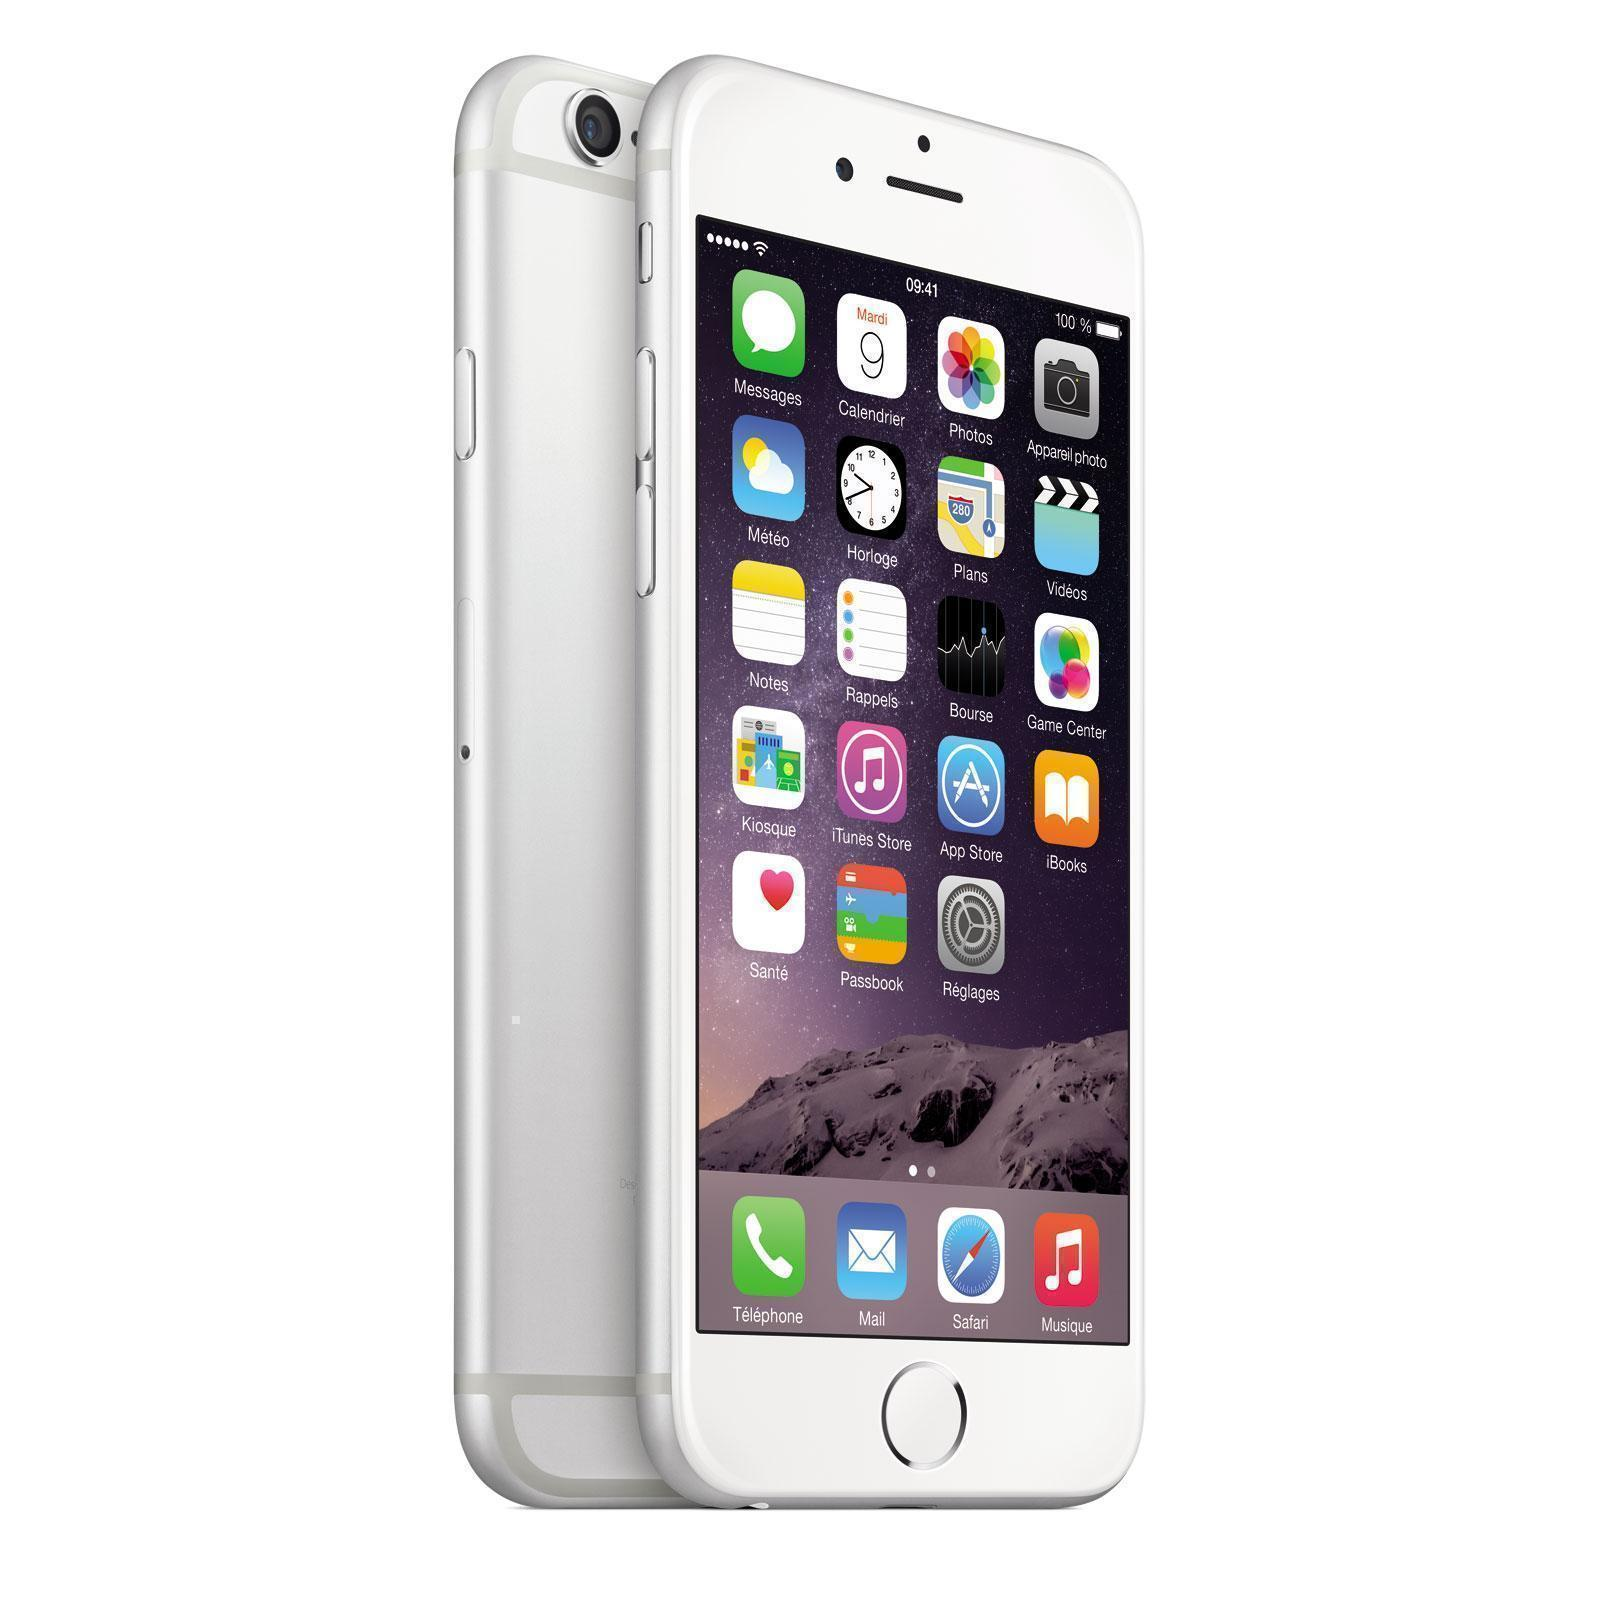 iPhone 6 16 GB - Plata - Libre reacondicionado